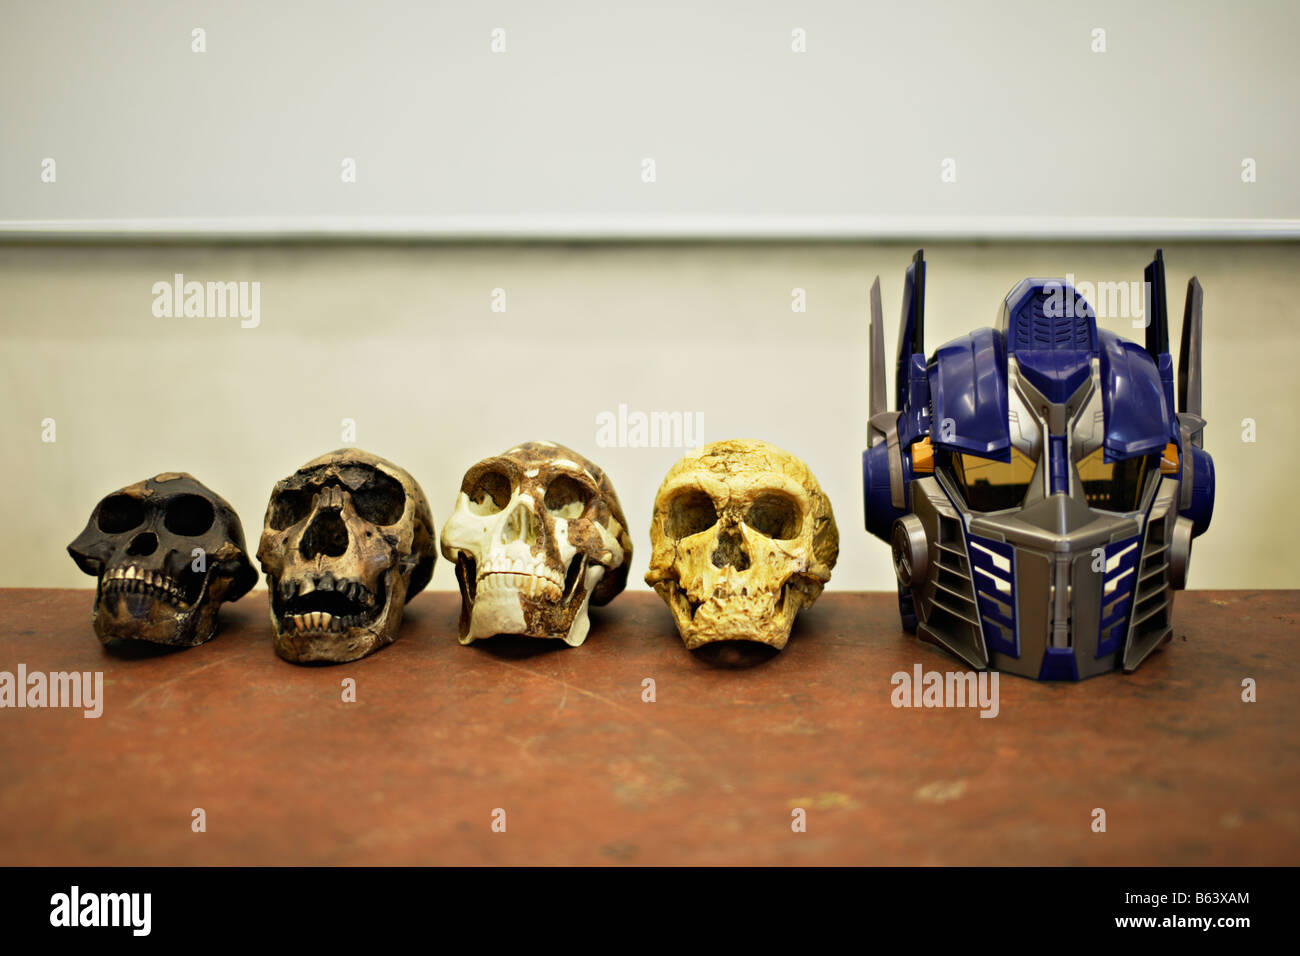 Early hominid skulls and Optimus Prime transformer robot toy mask from the Speilberg movie - Stock Image